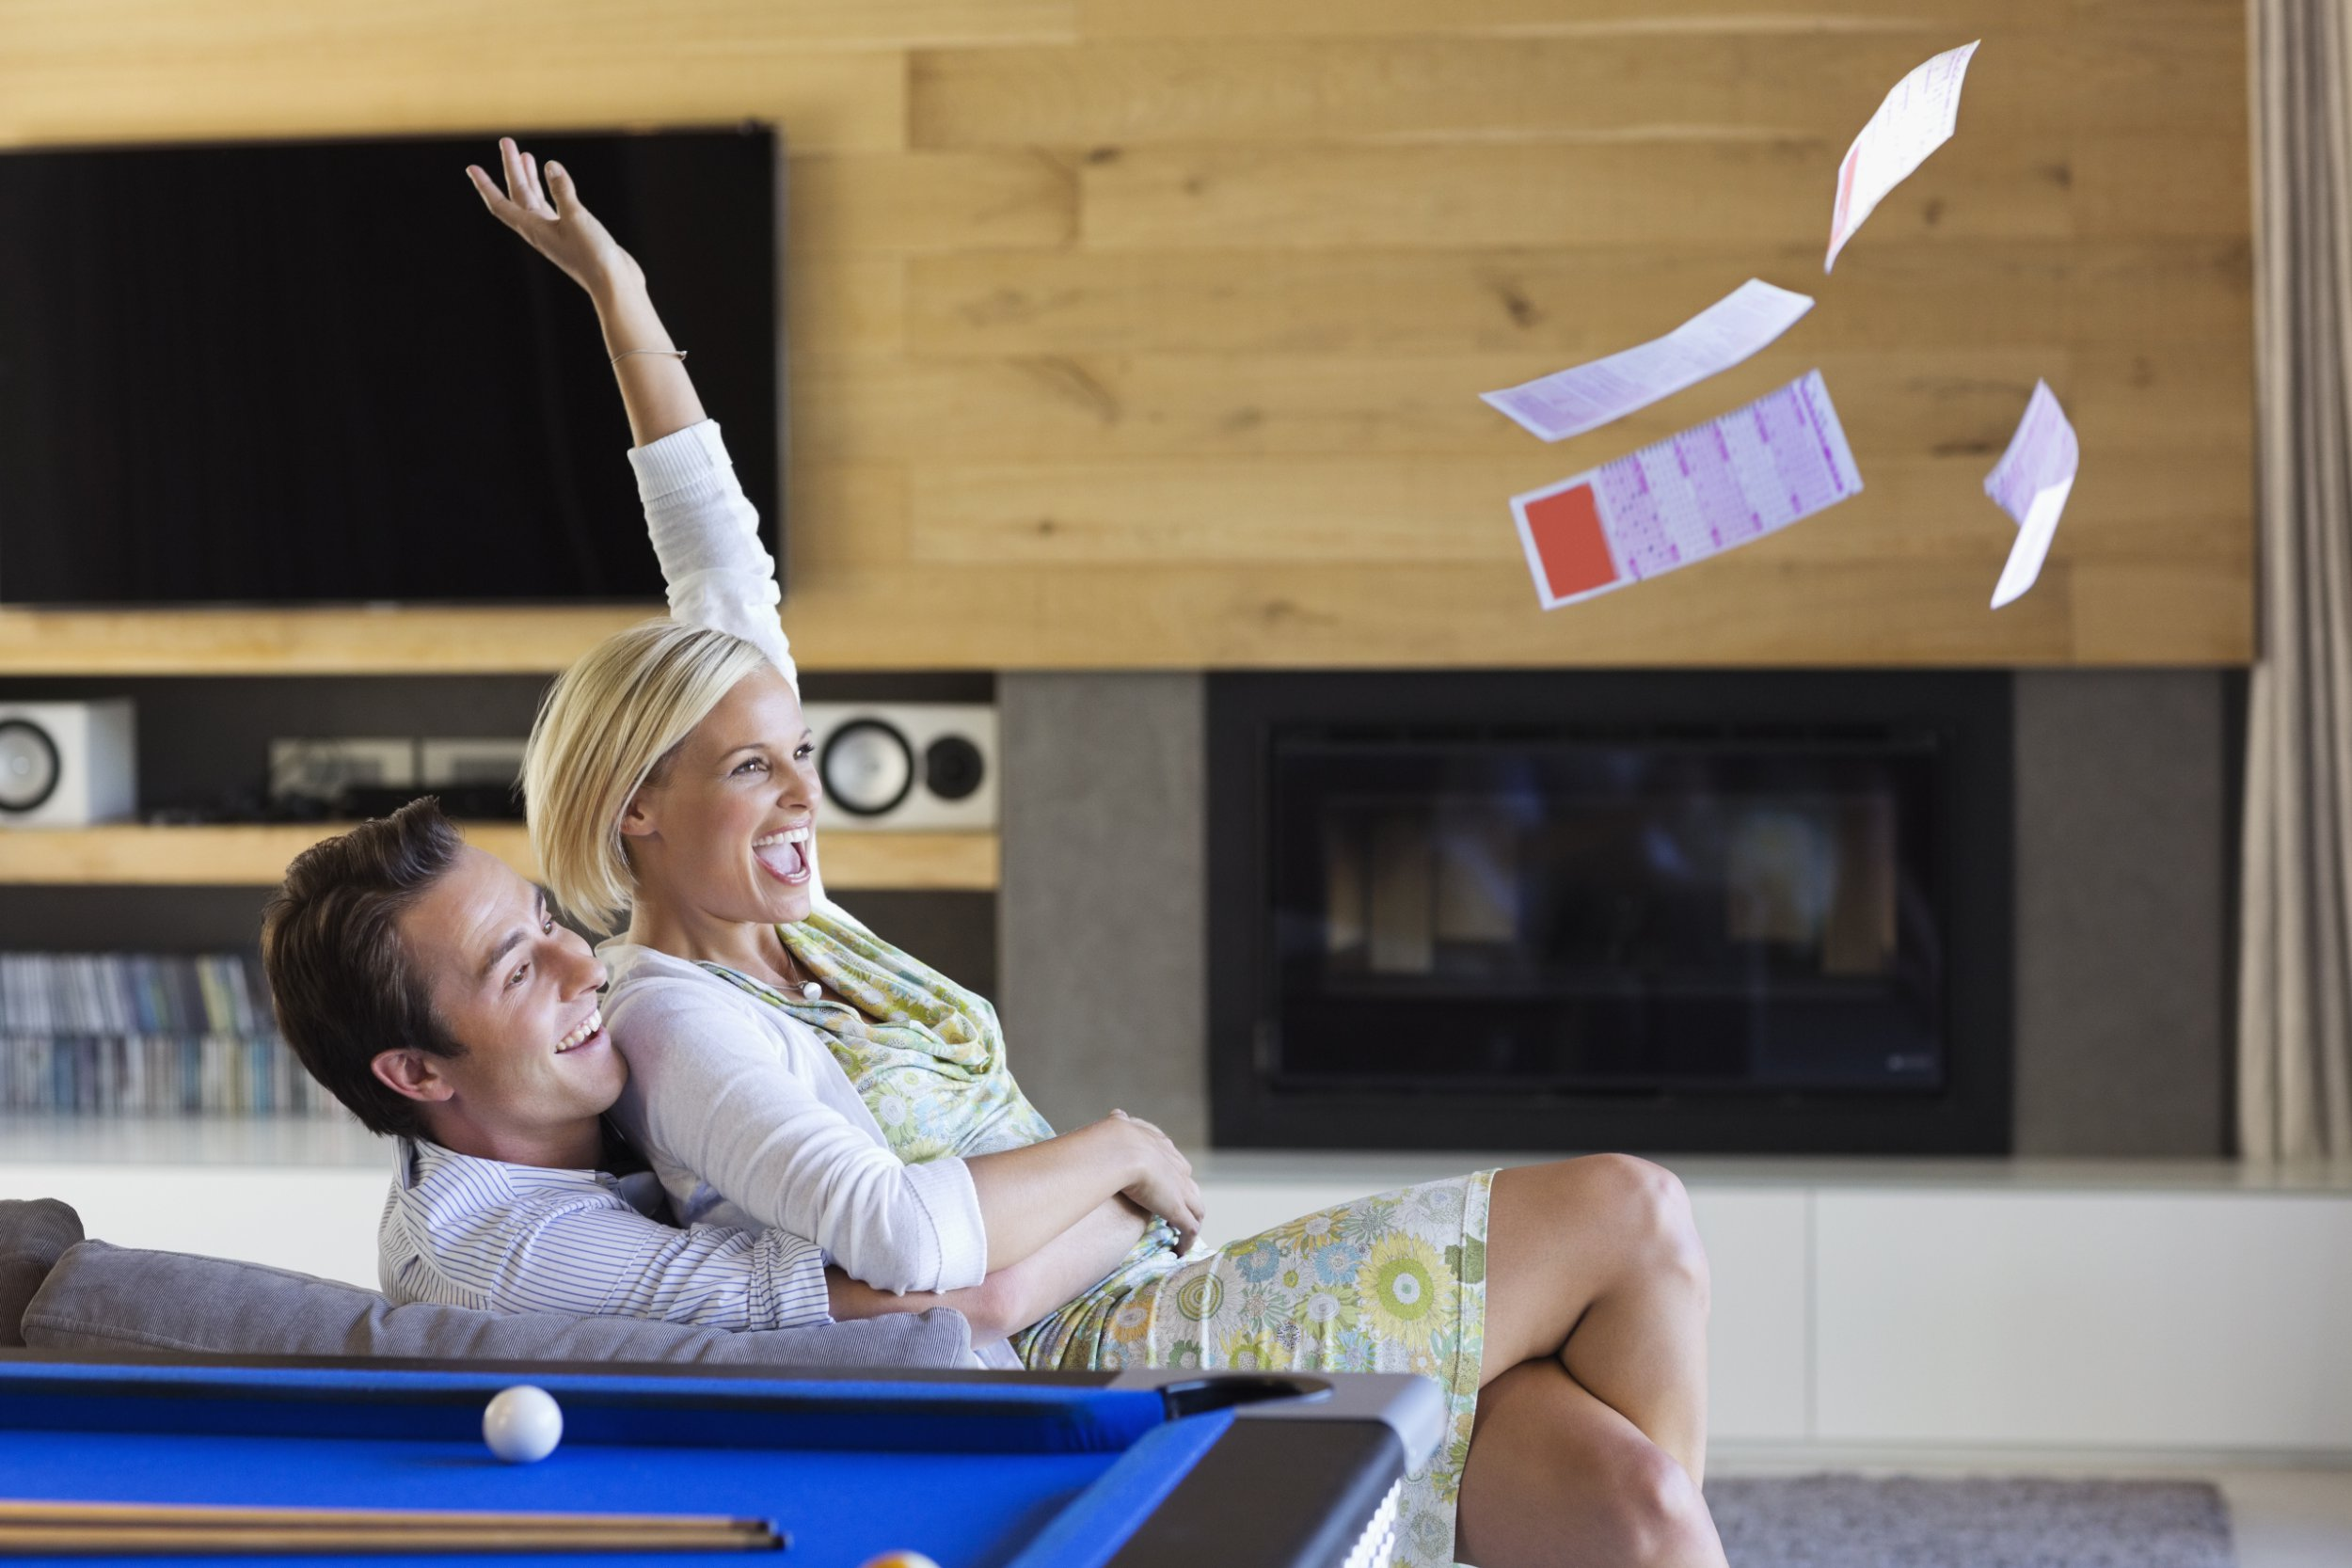 EuroMillions jackpot is £154,000,000 so what are you waiting for